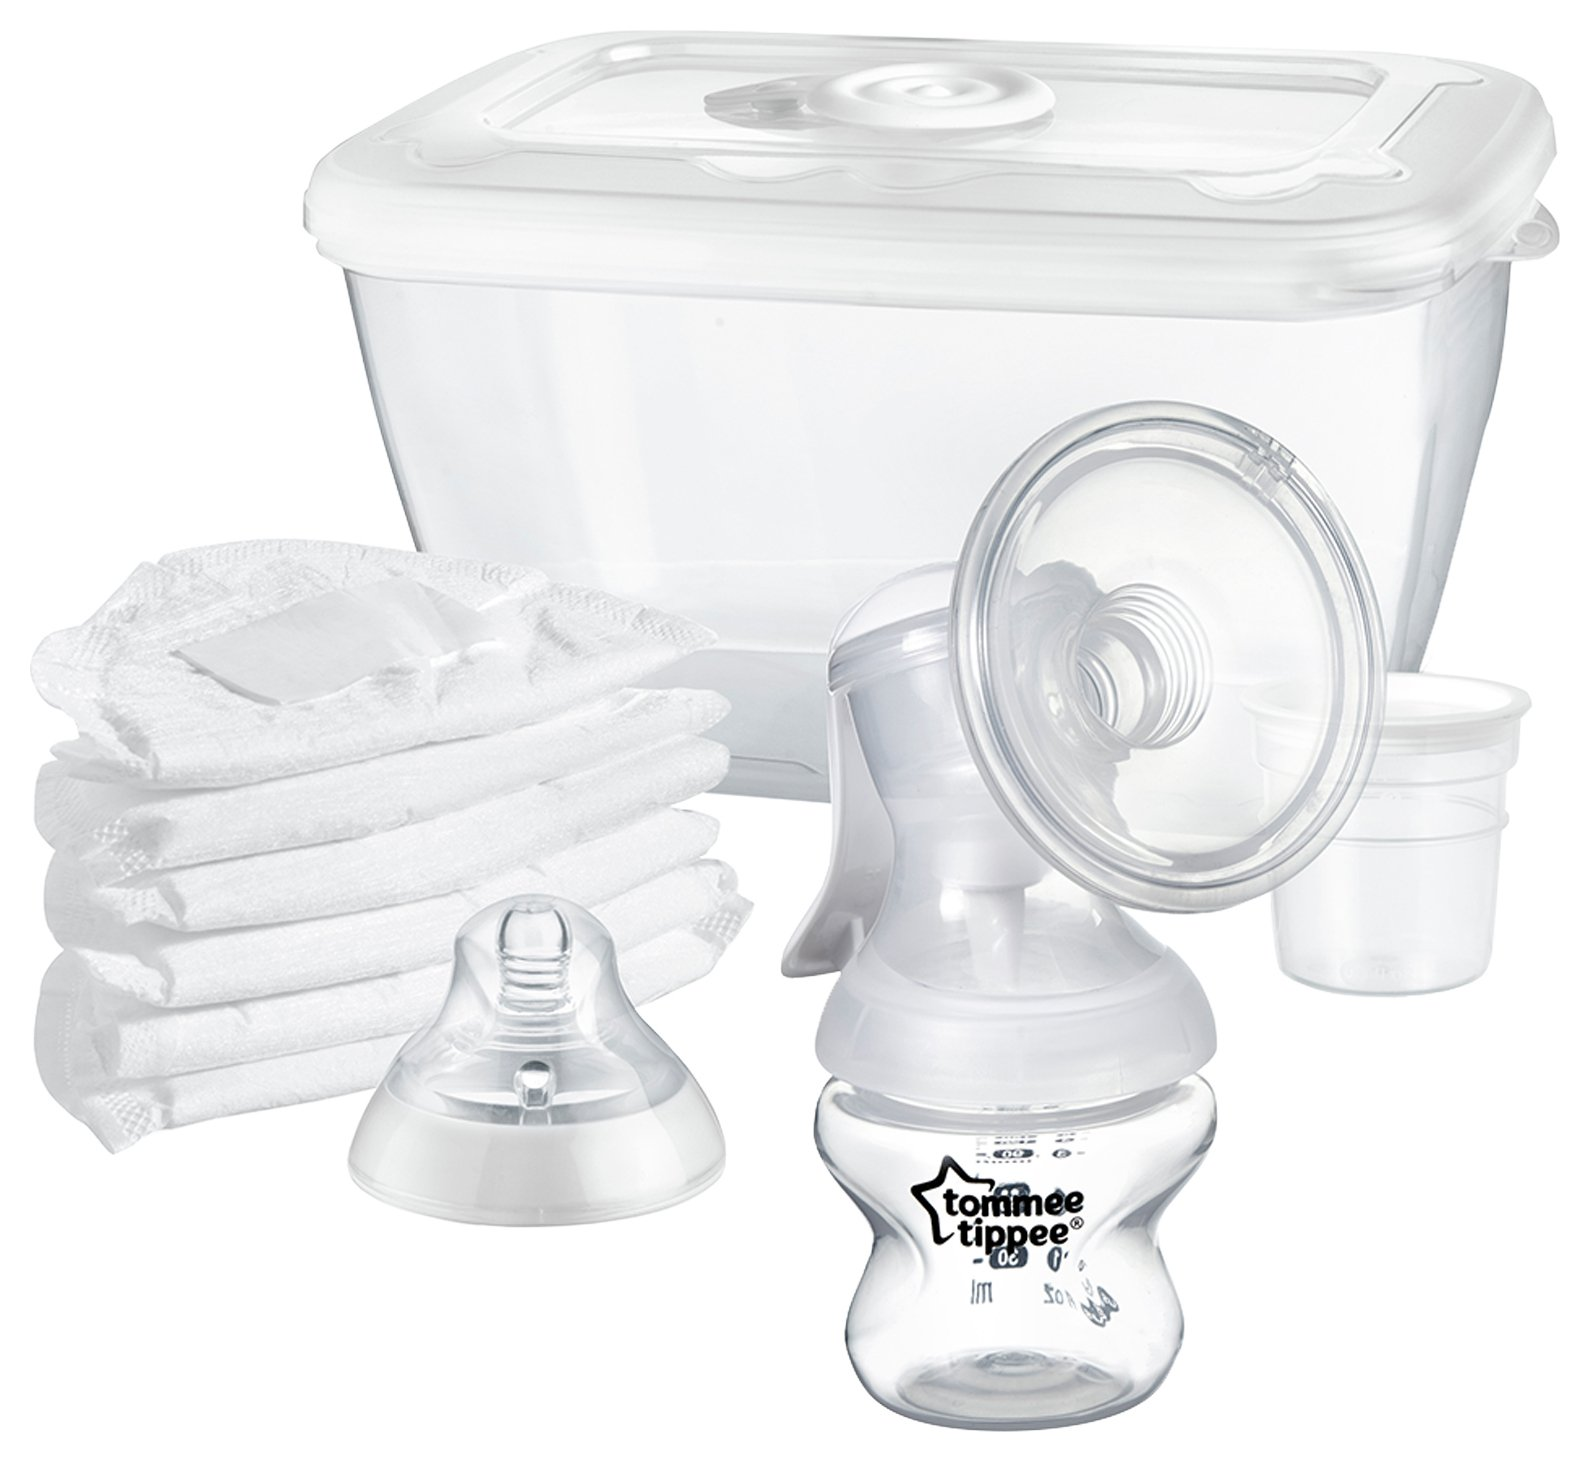 Tommee Tippee Find Offers Online And Compare Prices At Wunderstore Insulated Sippee Cup 12m Yellow Bee Manual Breast Pump From